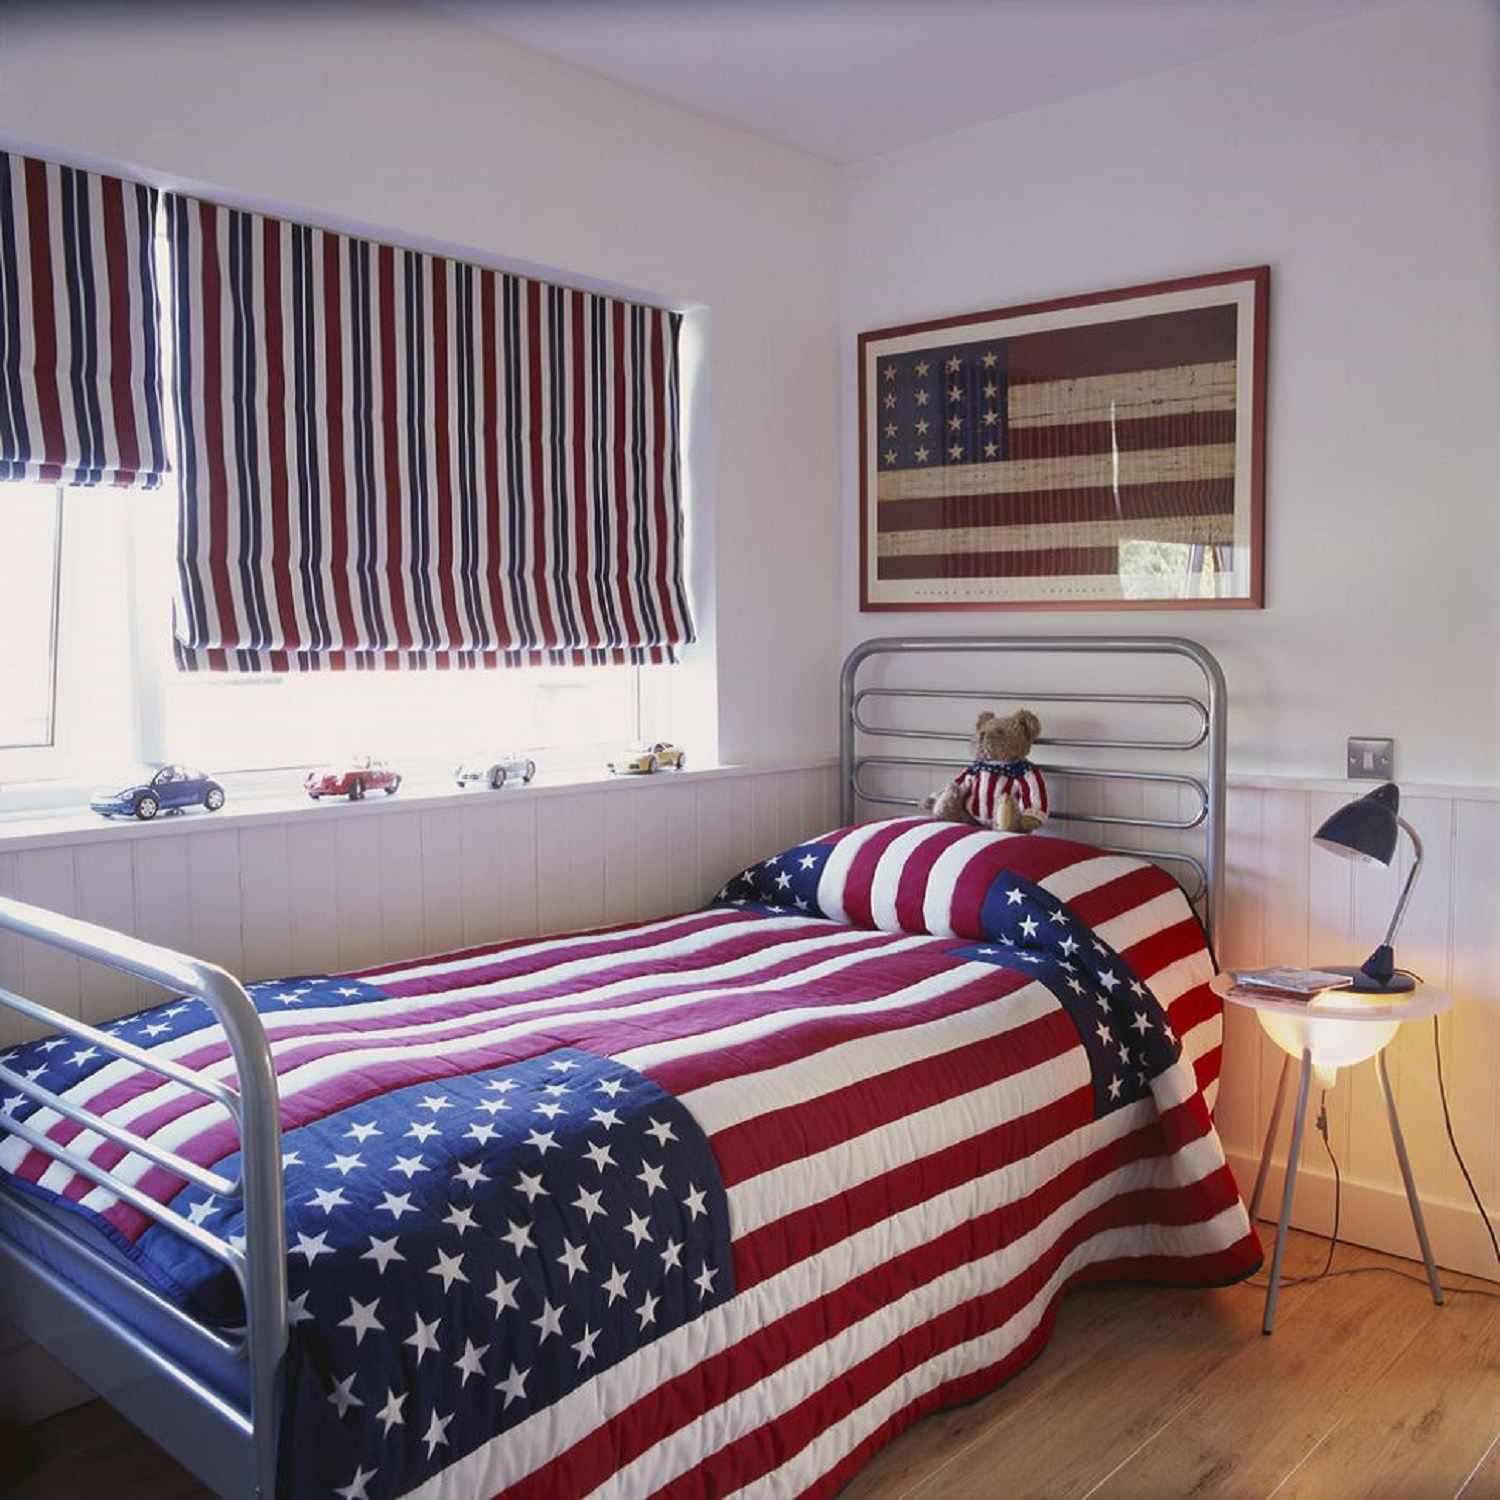 Roman shades in a patriotically-themed boy's room.